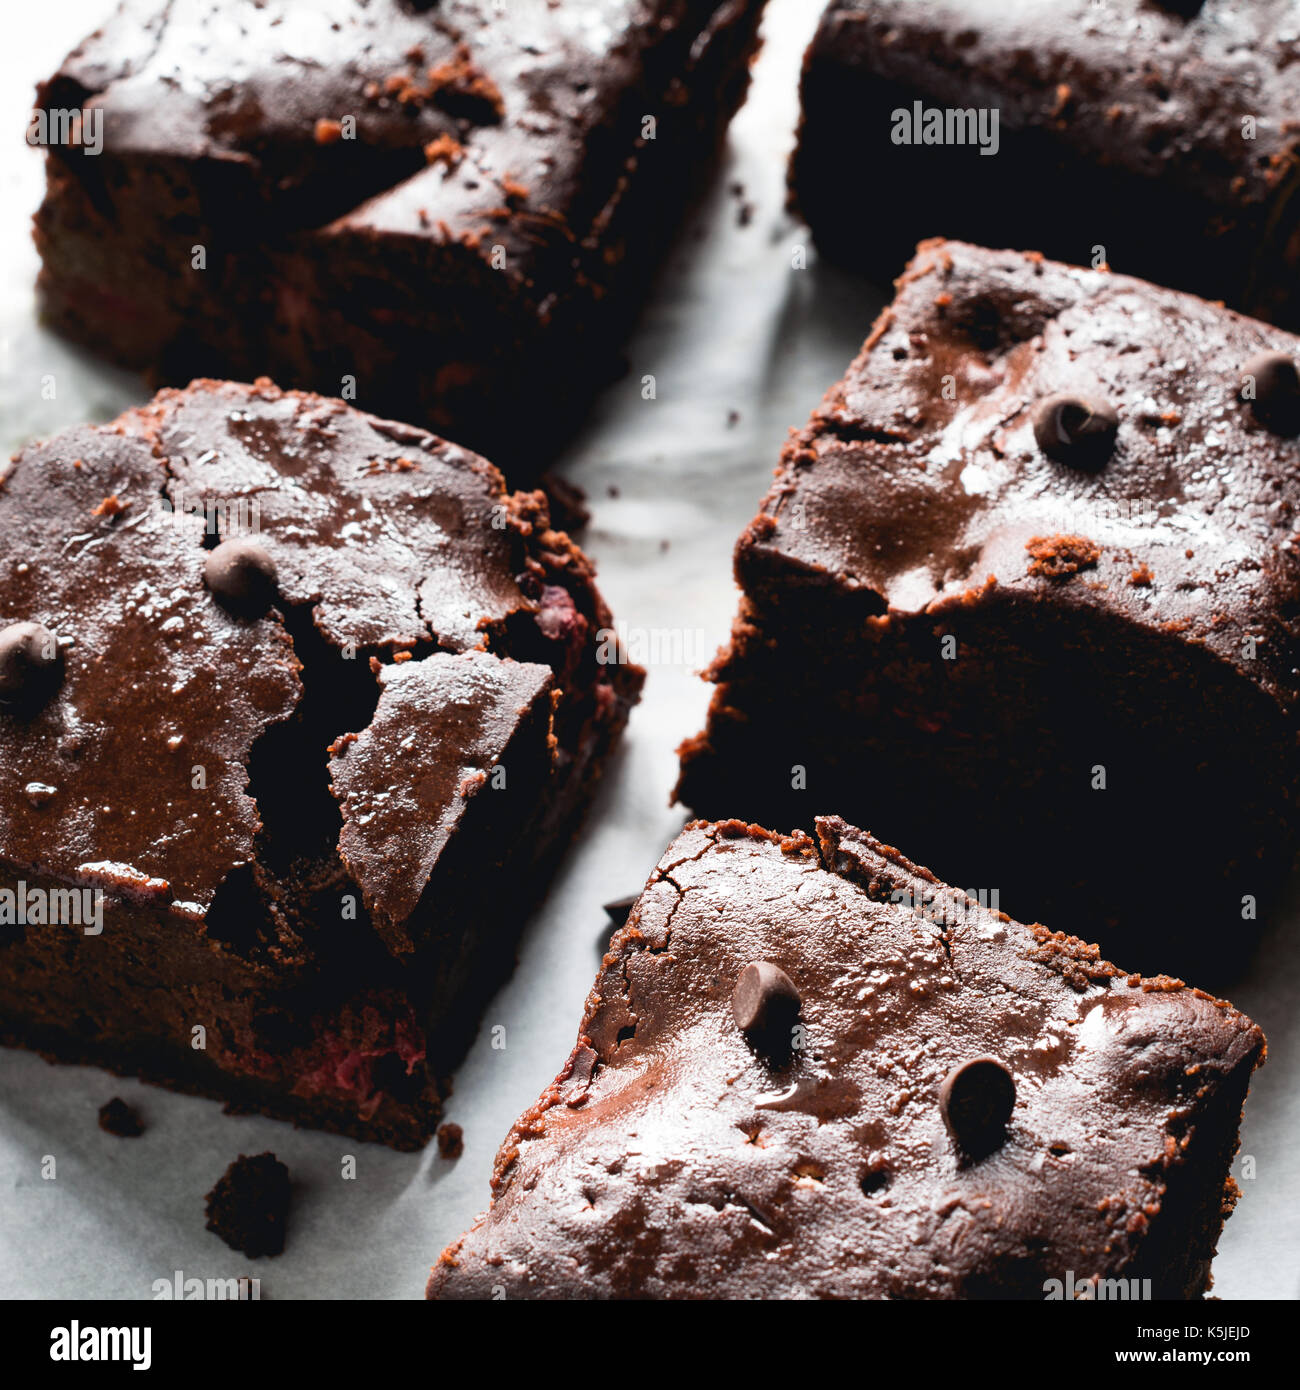 Dark chocolate brownies on baking paper. Closeup view square crop - Stock Image